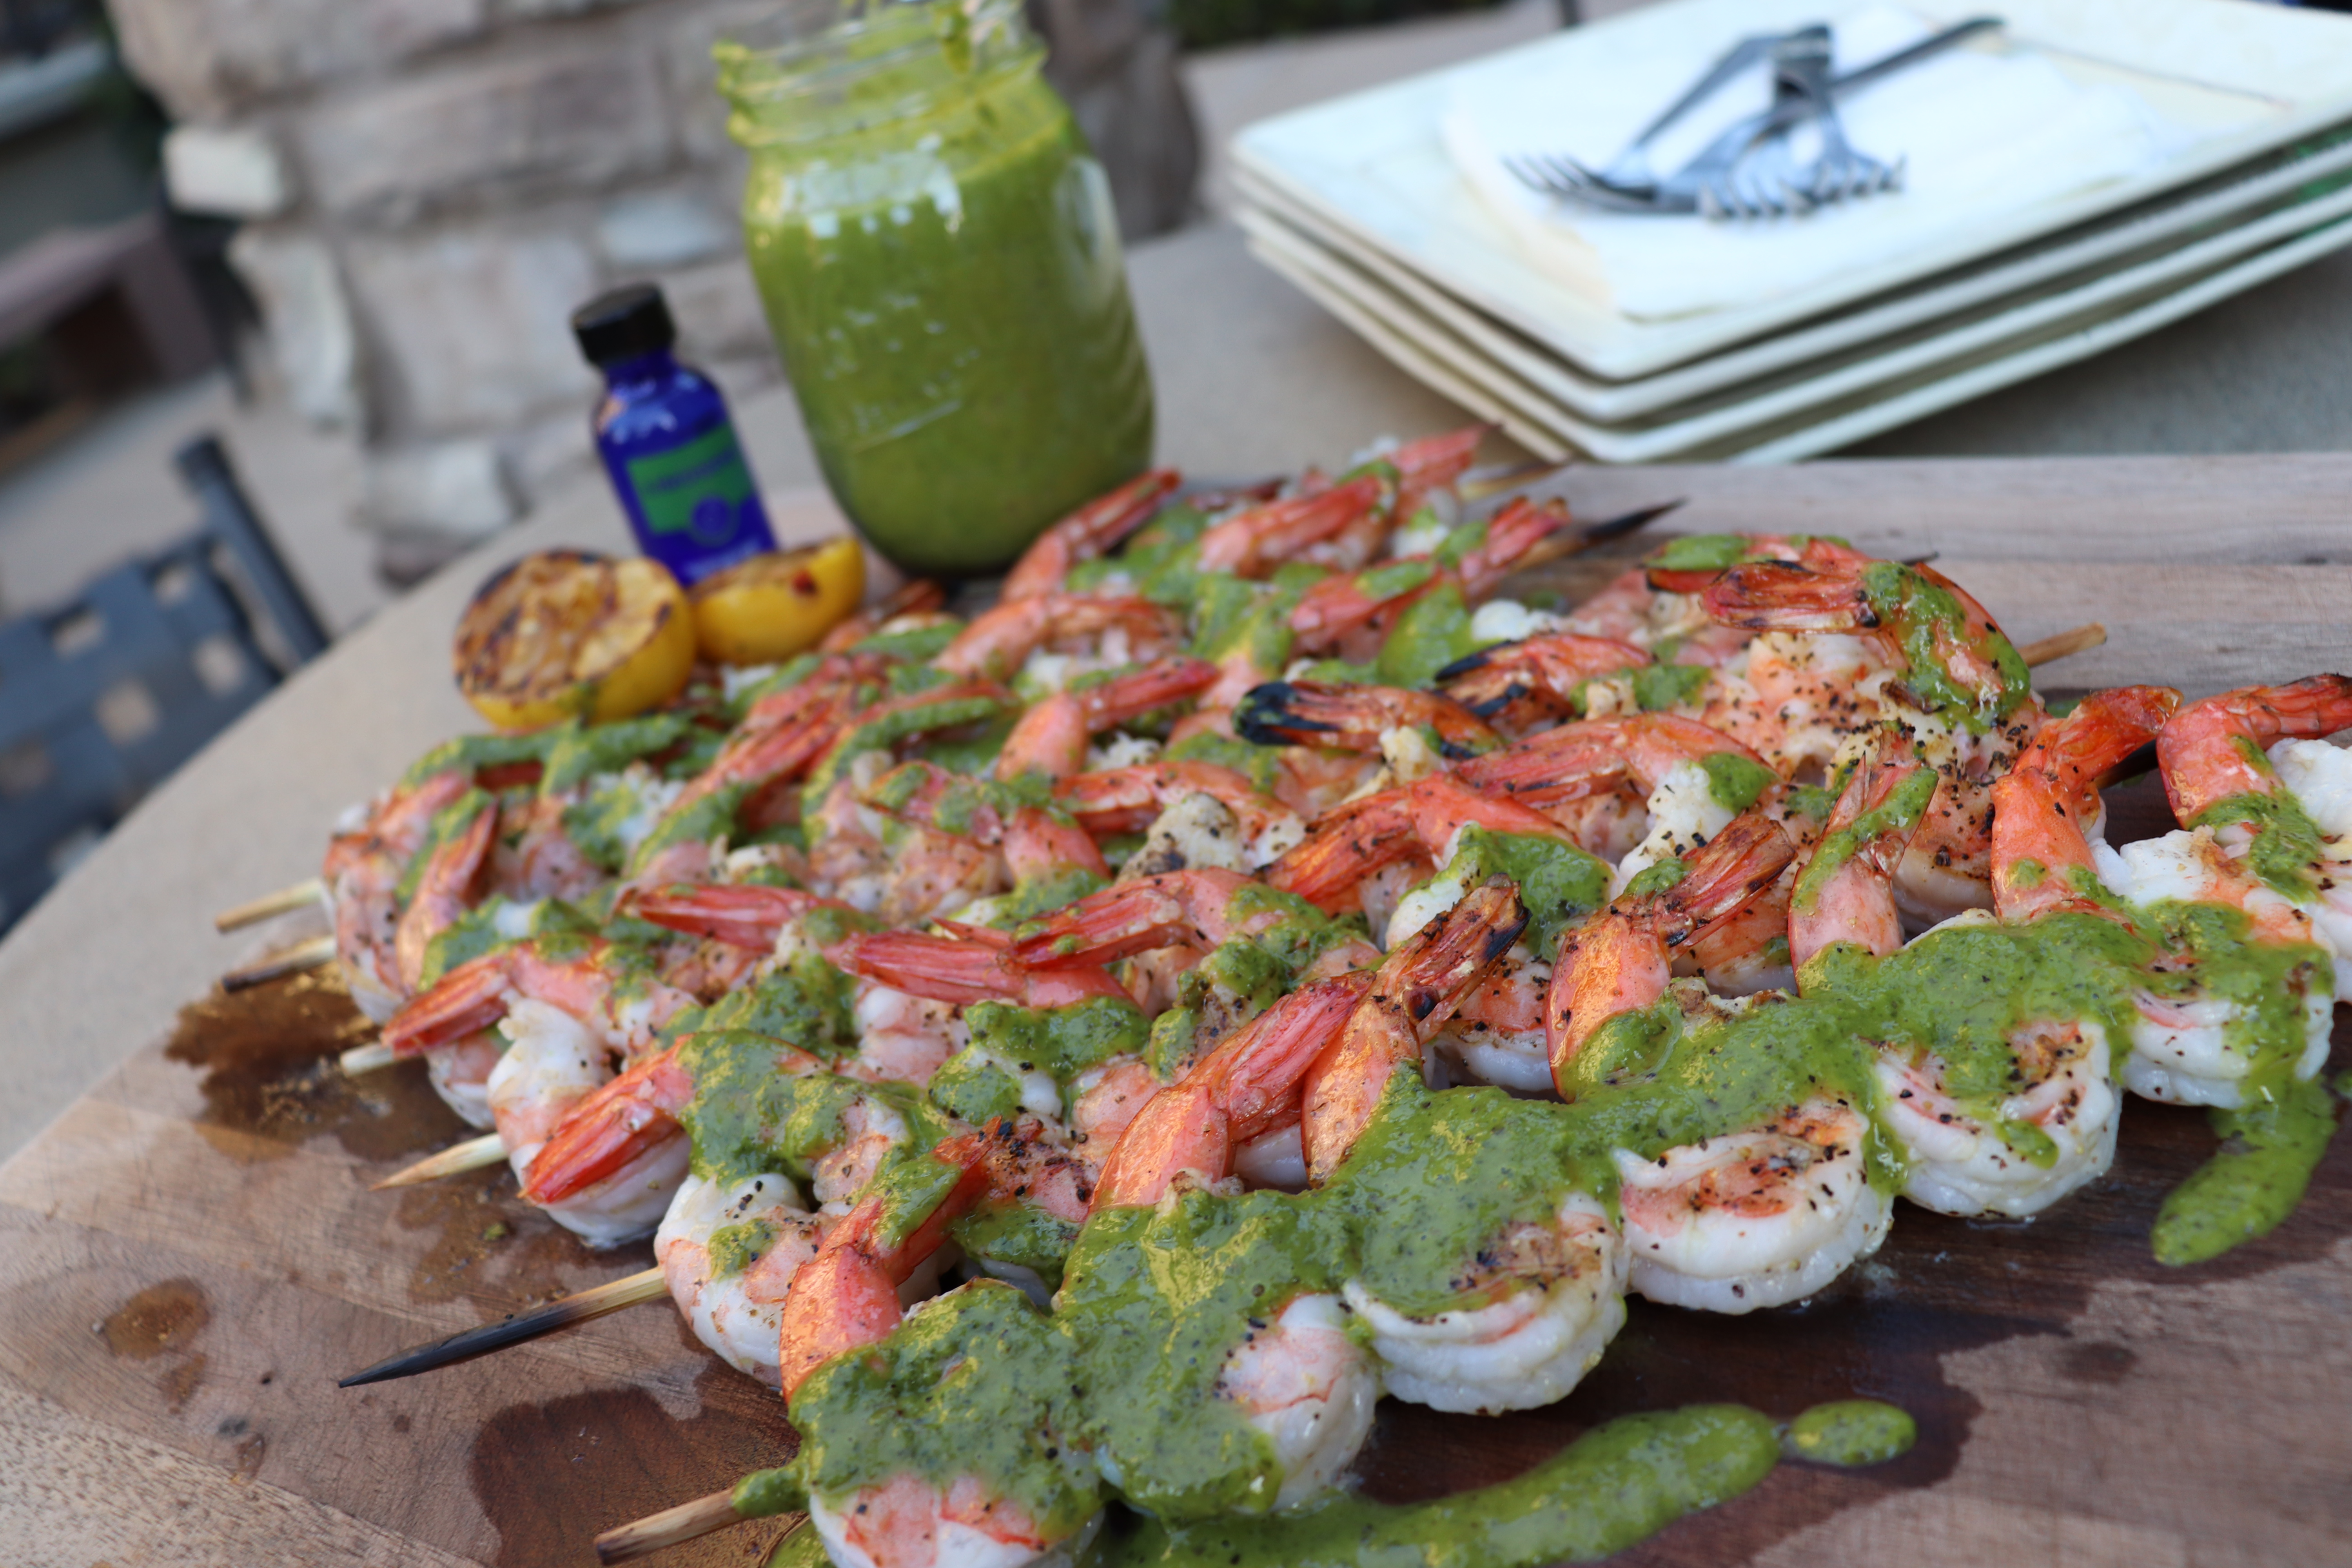 Grilled Shrimp with Terpene Infused Chimichurri